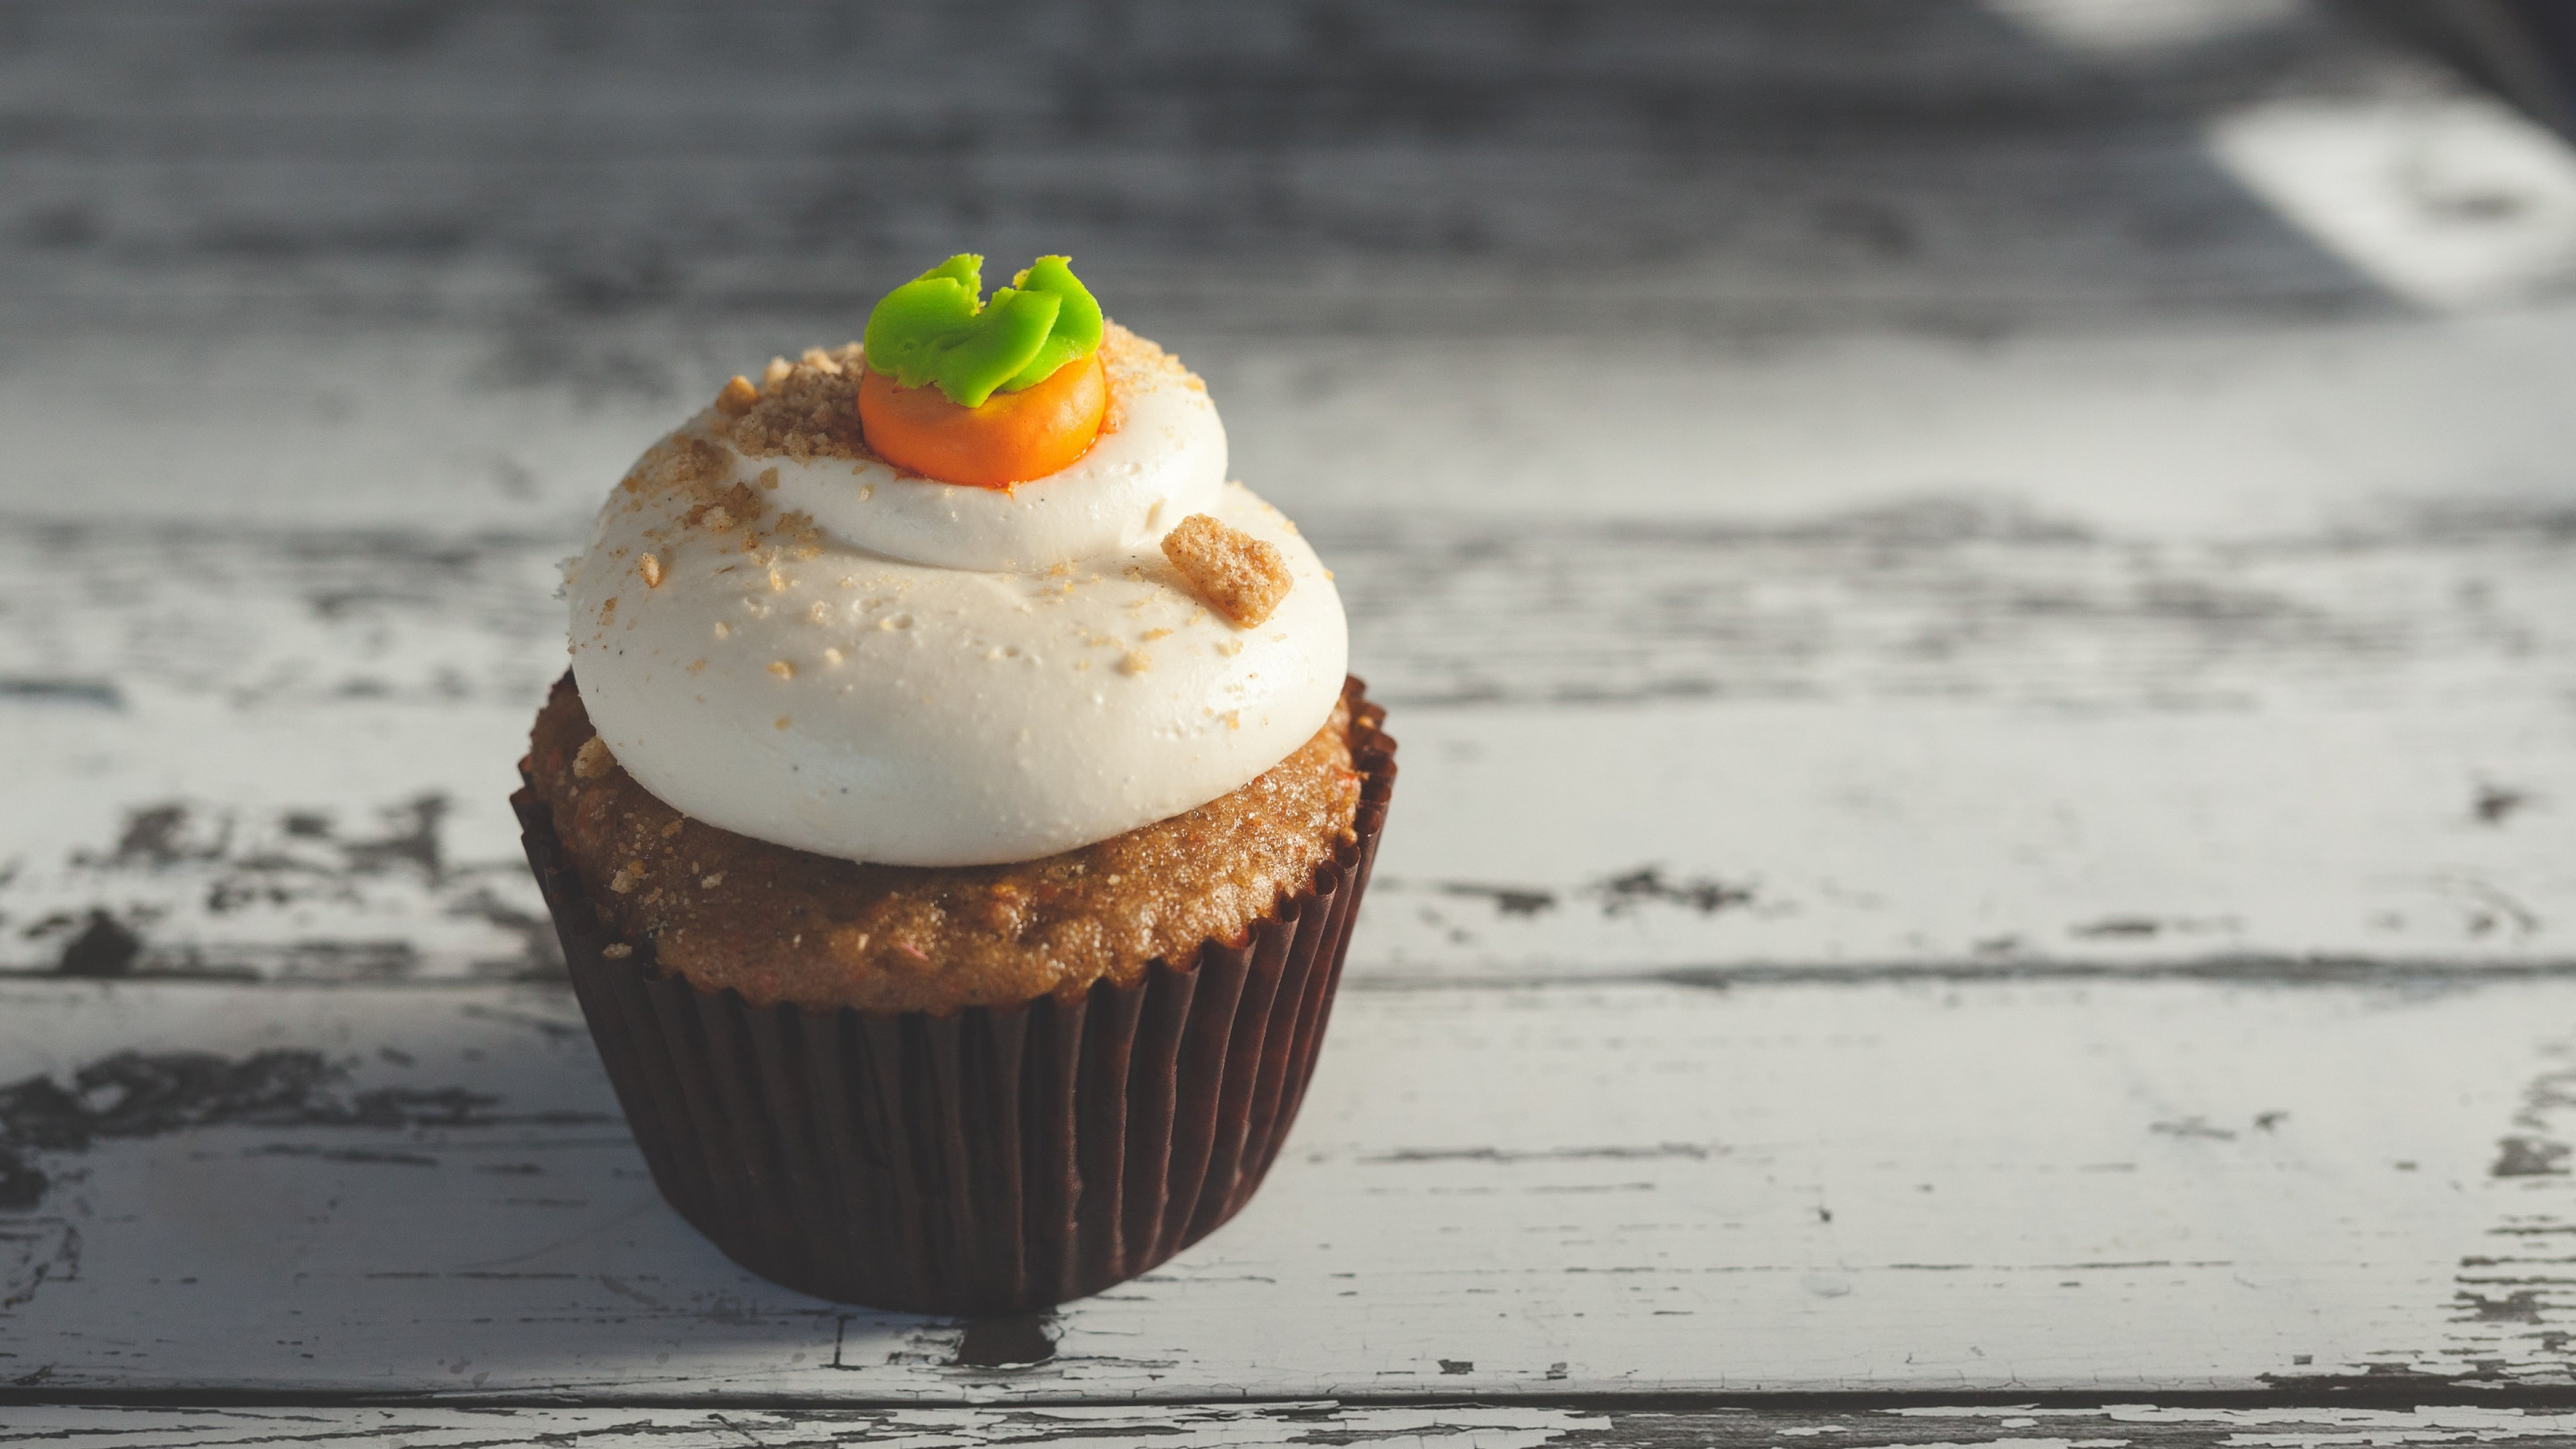 Muffin with cream wallpaper 2880x1620